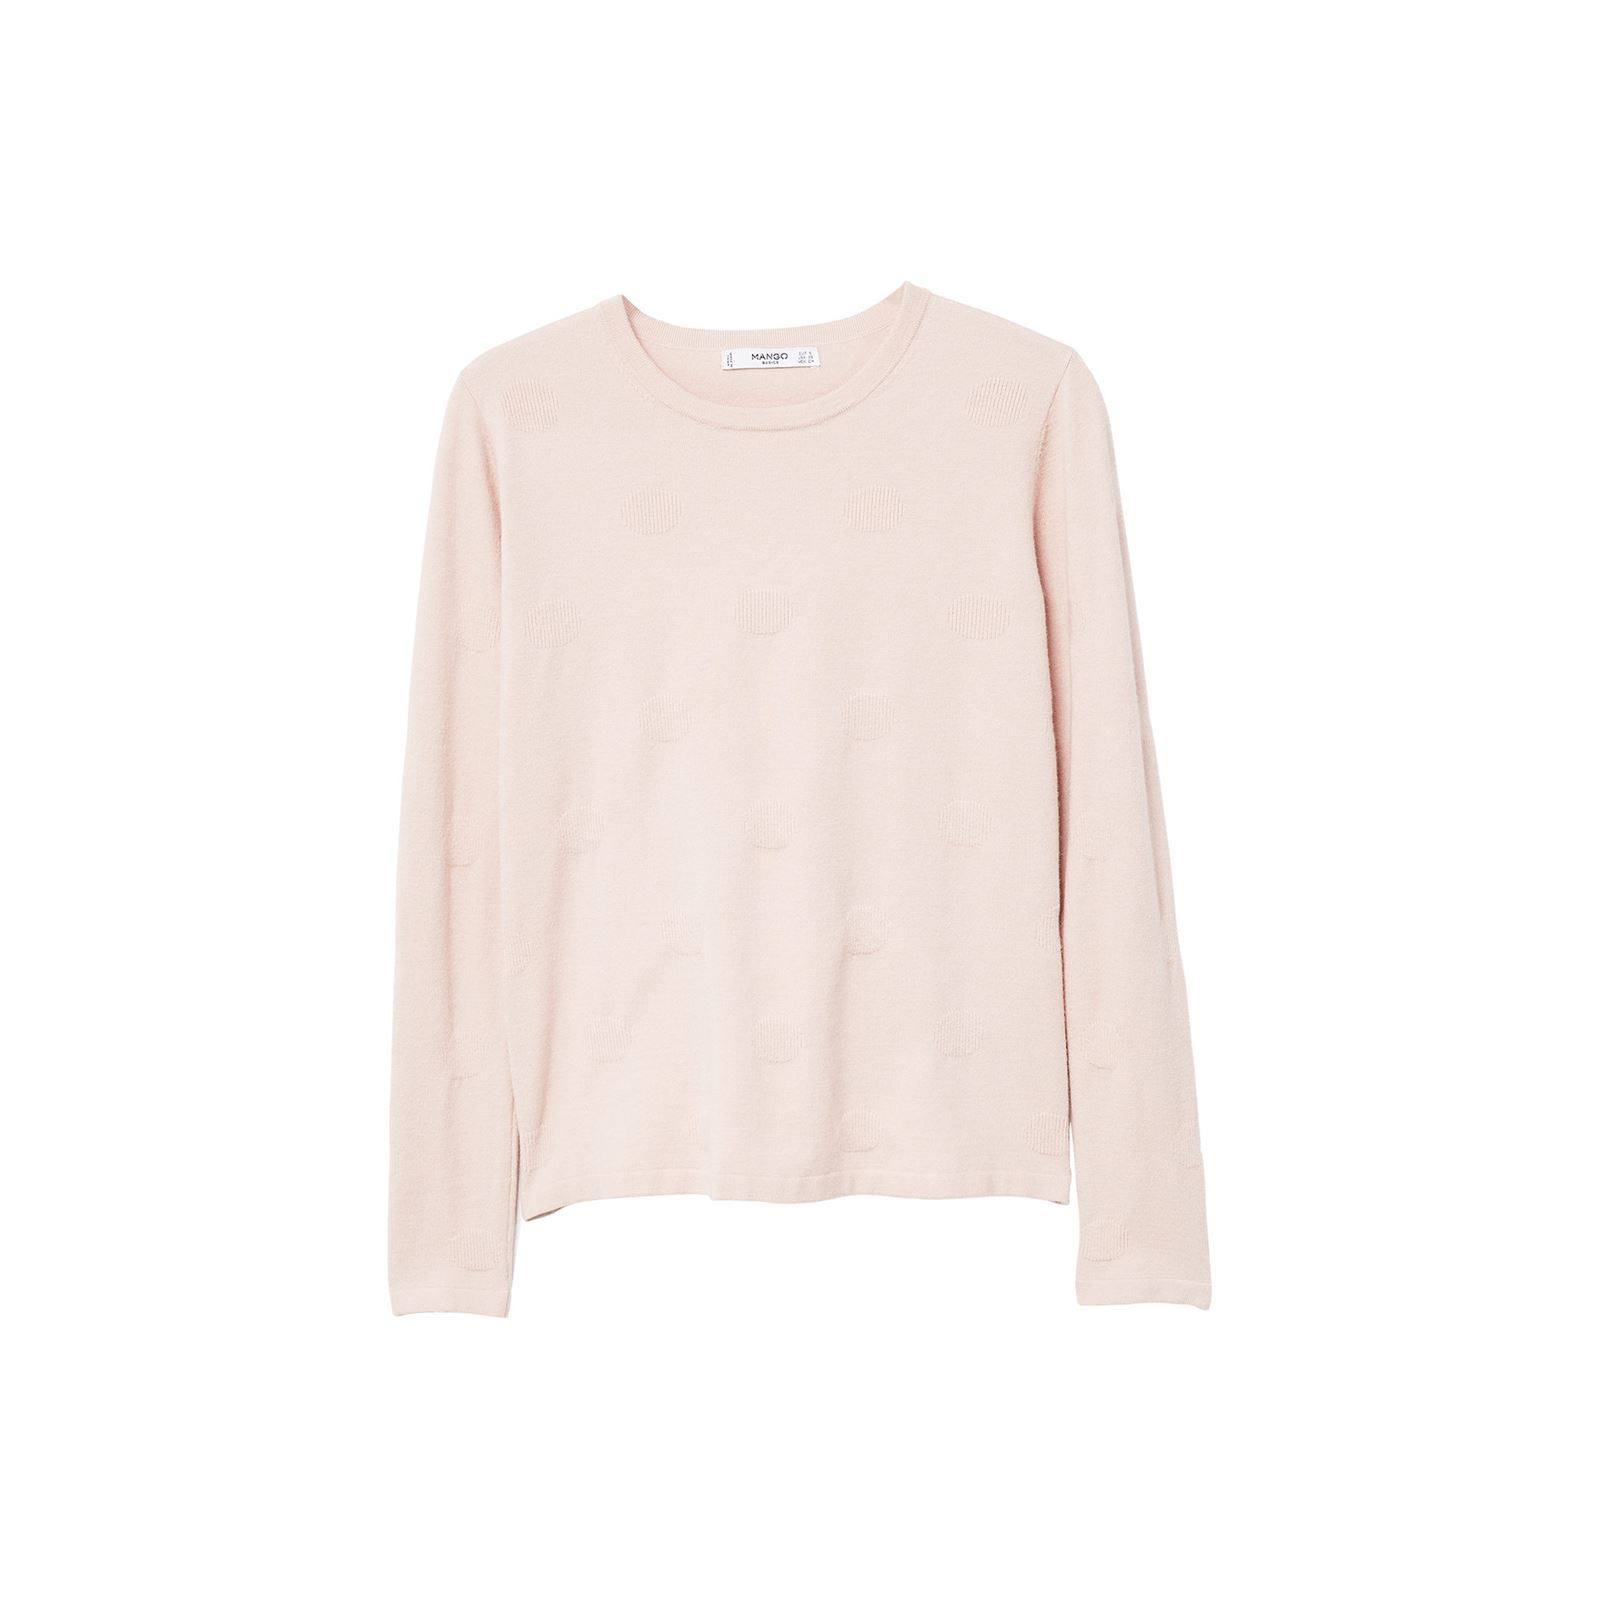 488a23bc5aeb Mango Pull-over à pois relief - rose